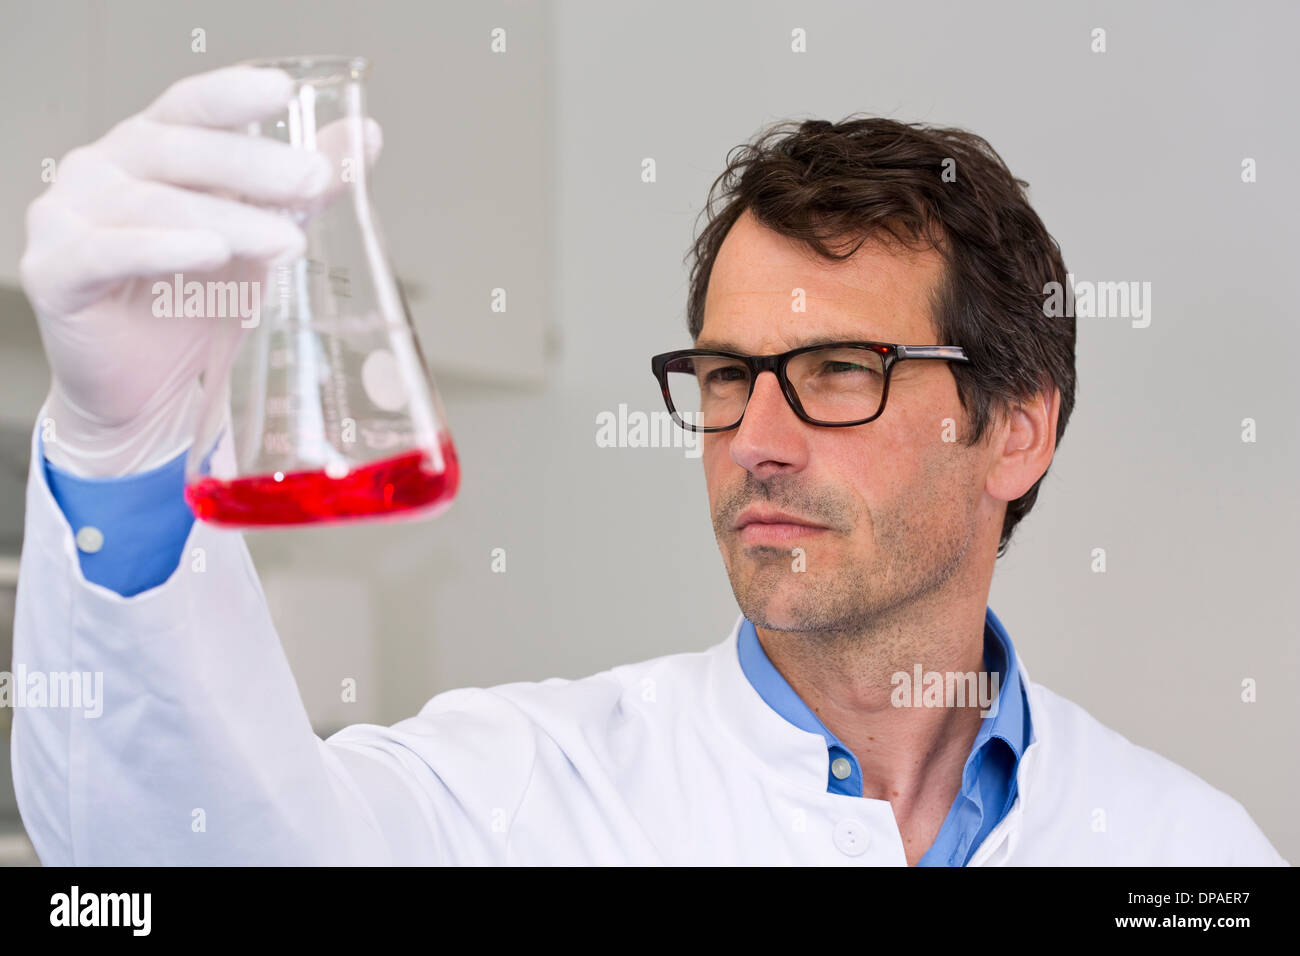 Male scientist examining ph-reaction of liquid in flask - Stock Image